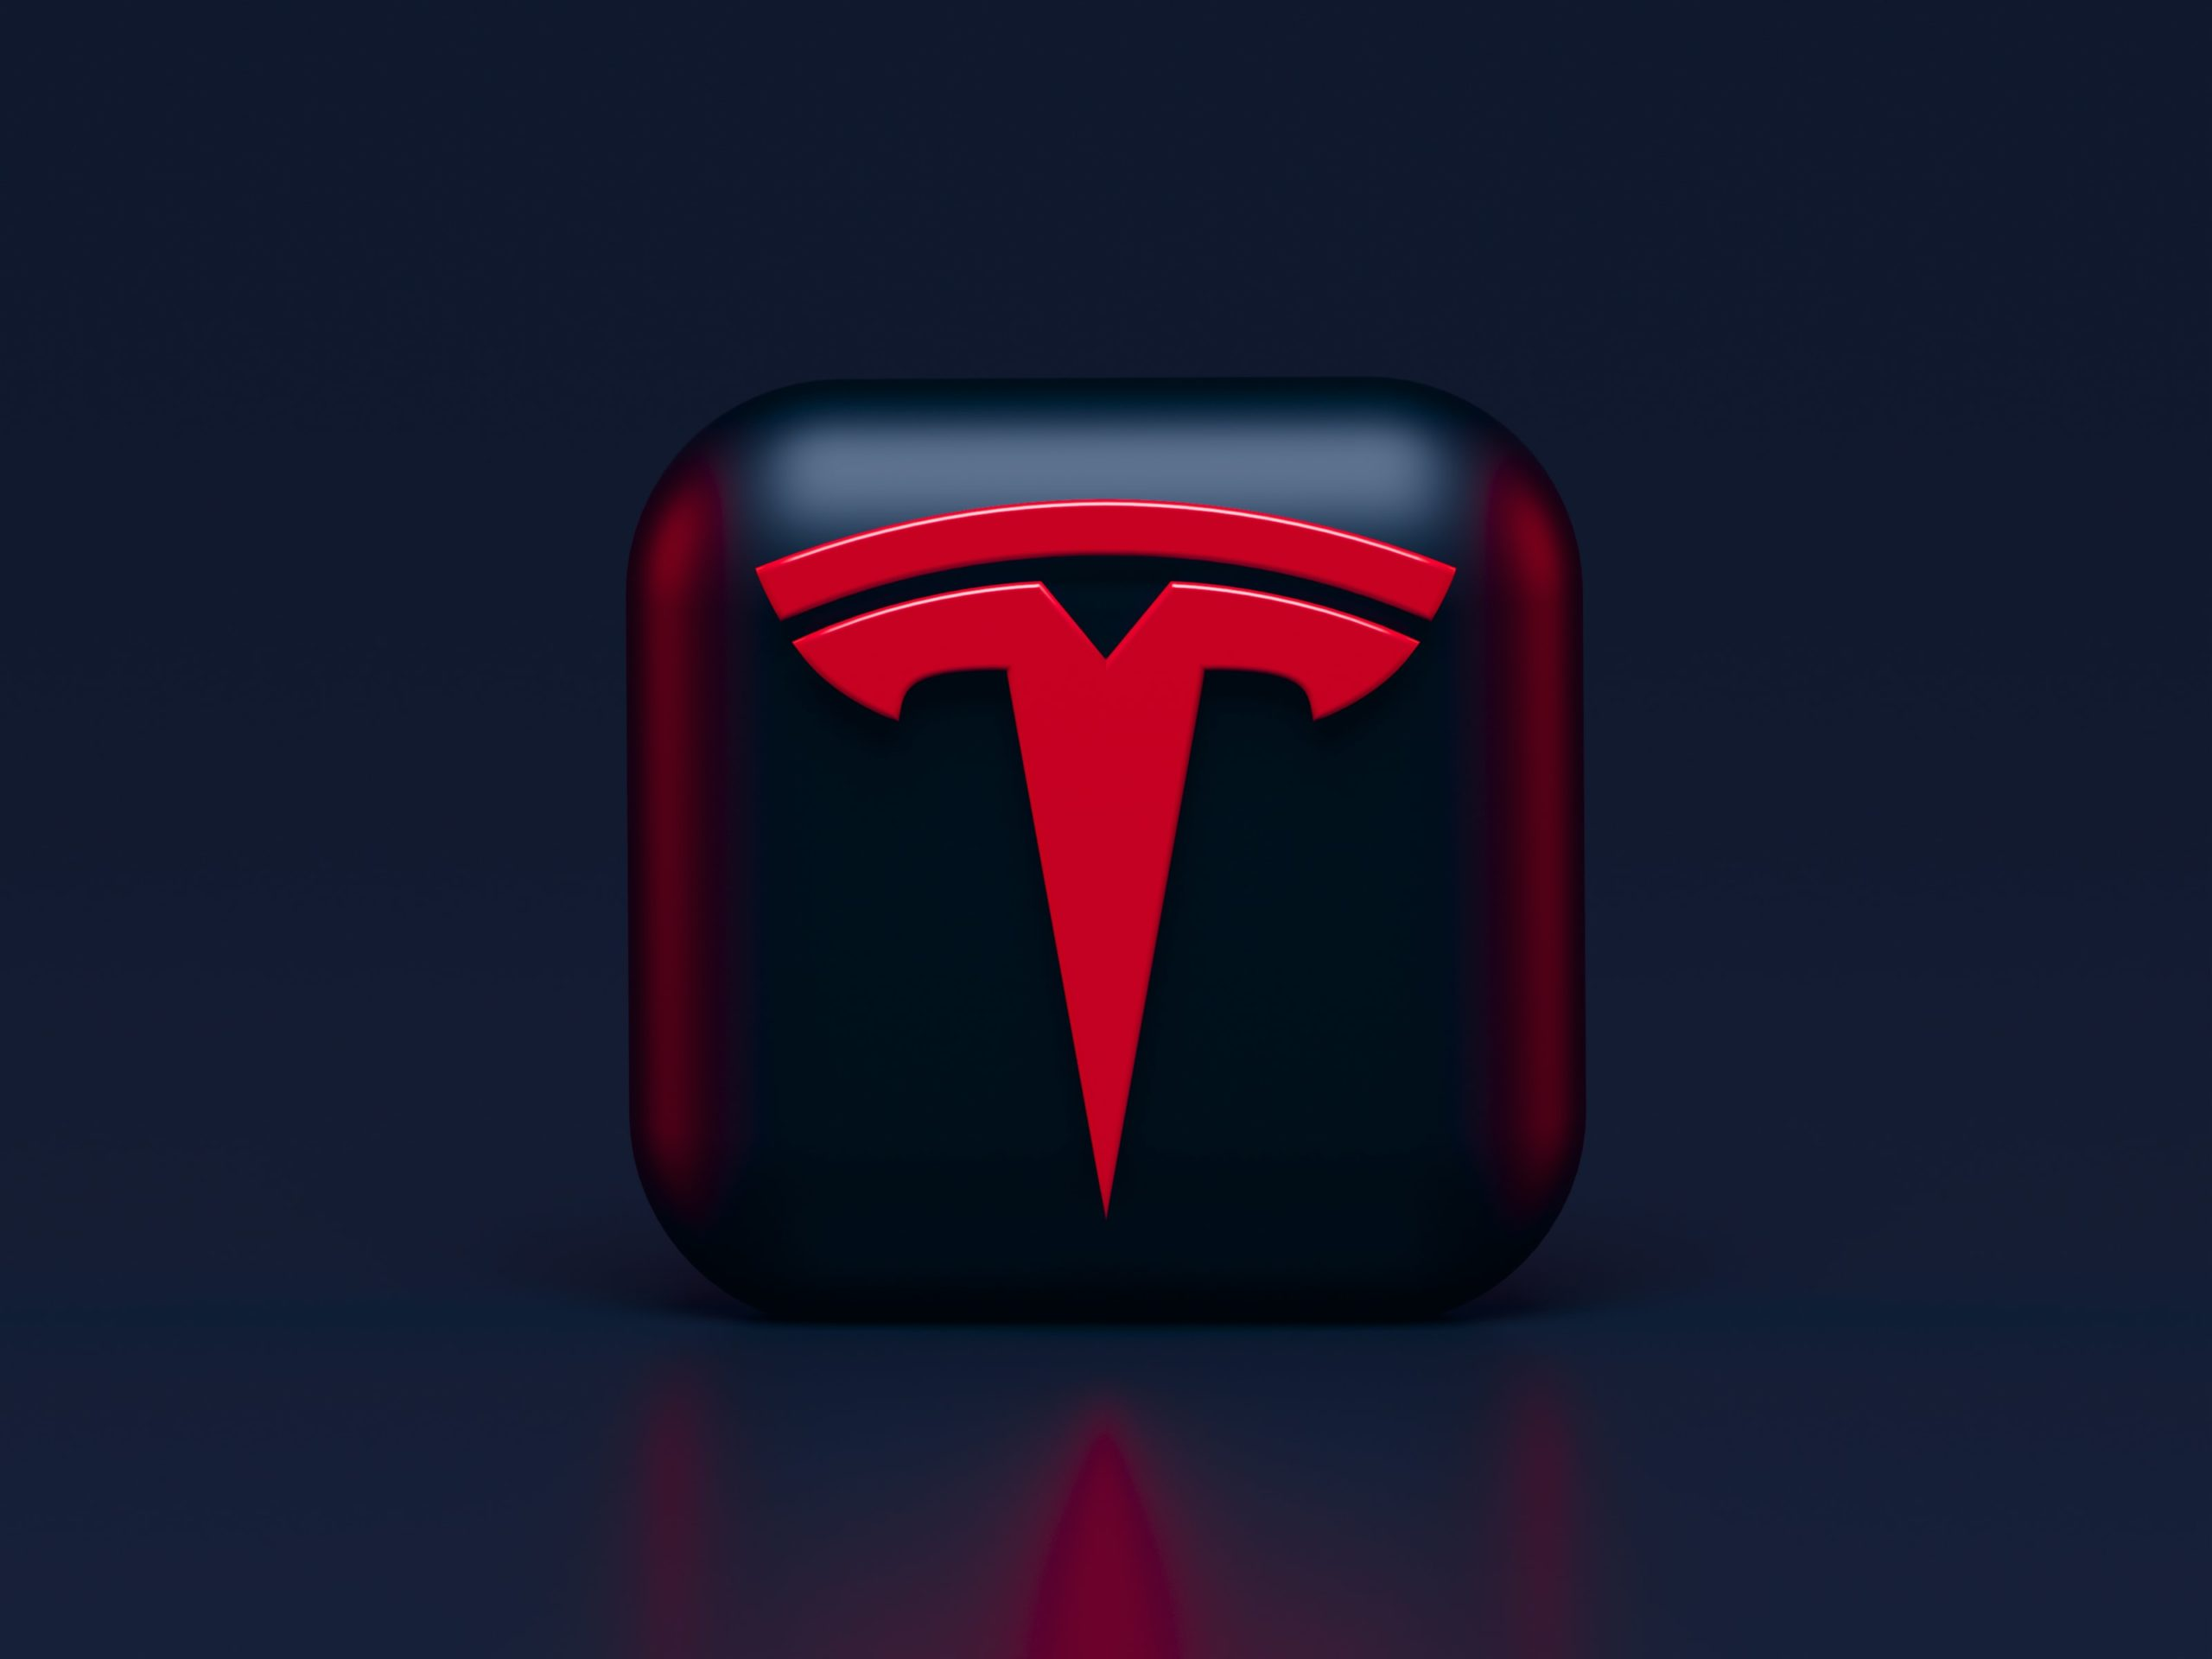 Tesla logo - Designing a logo to boost your brand